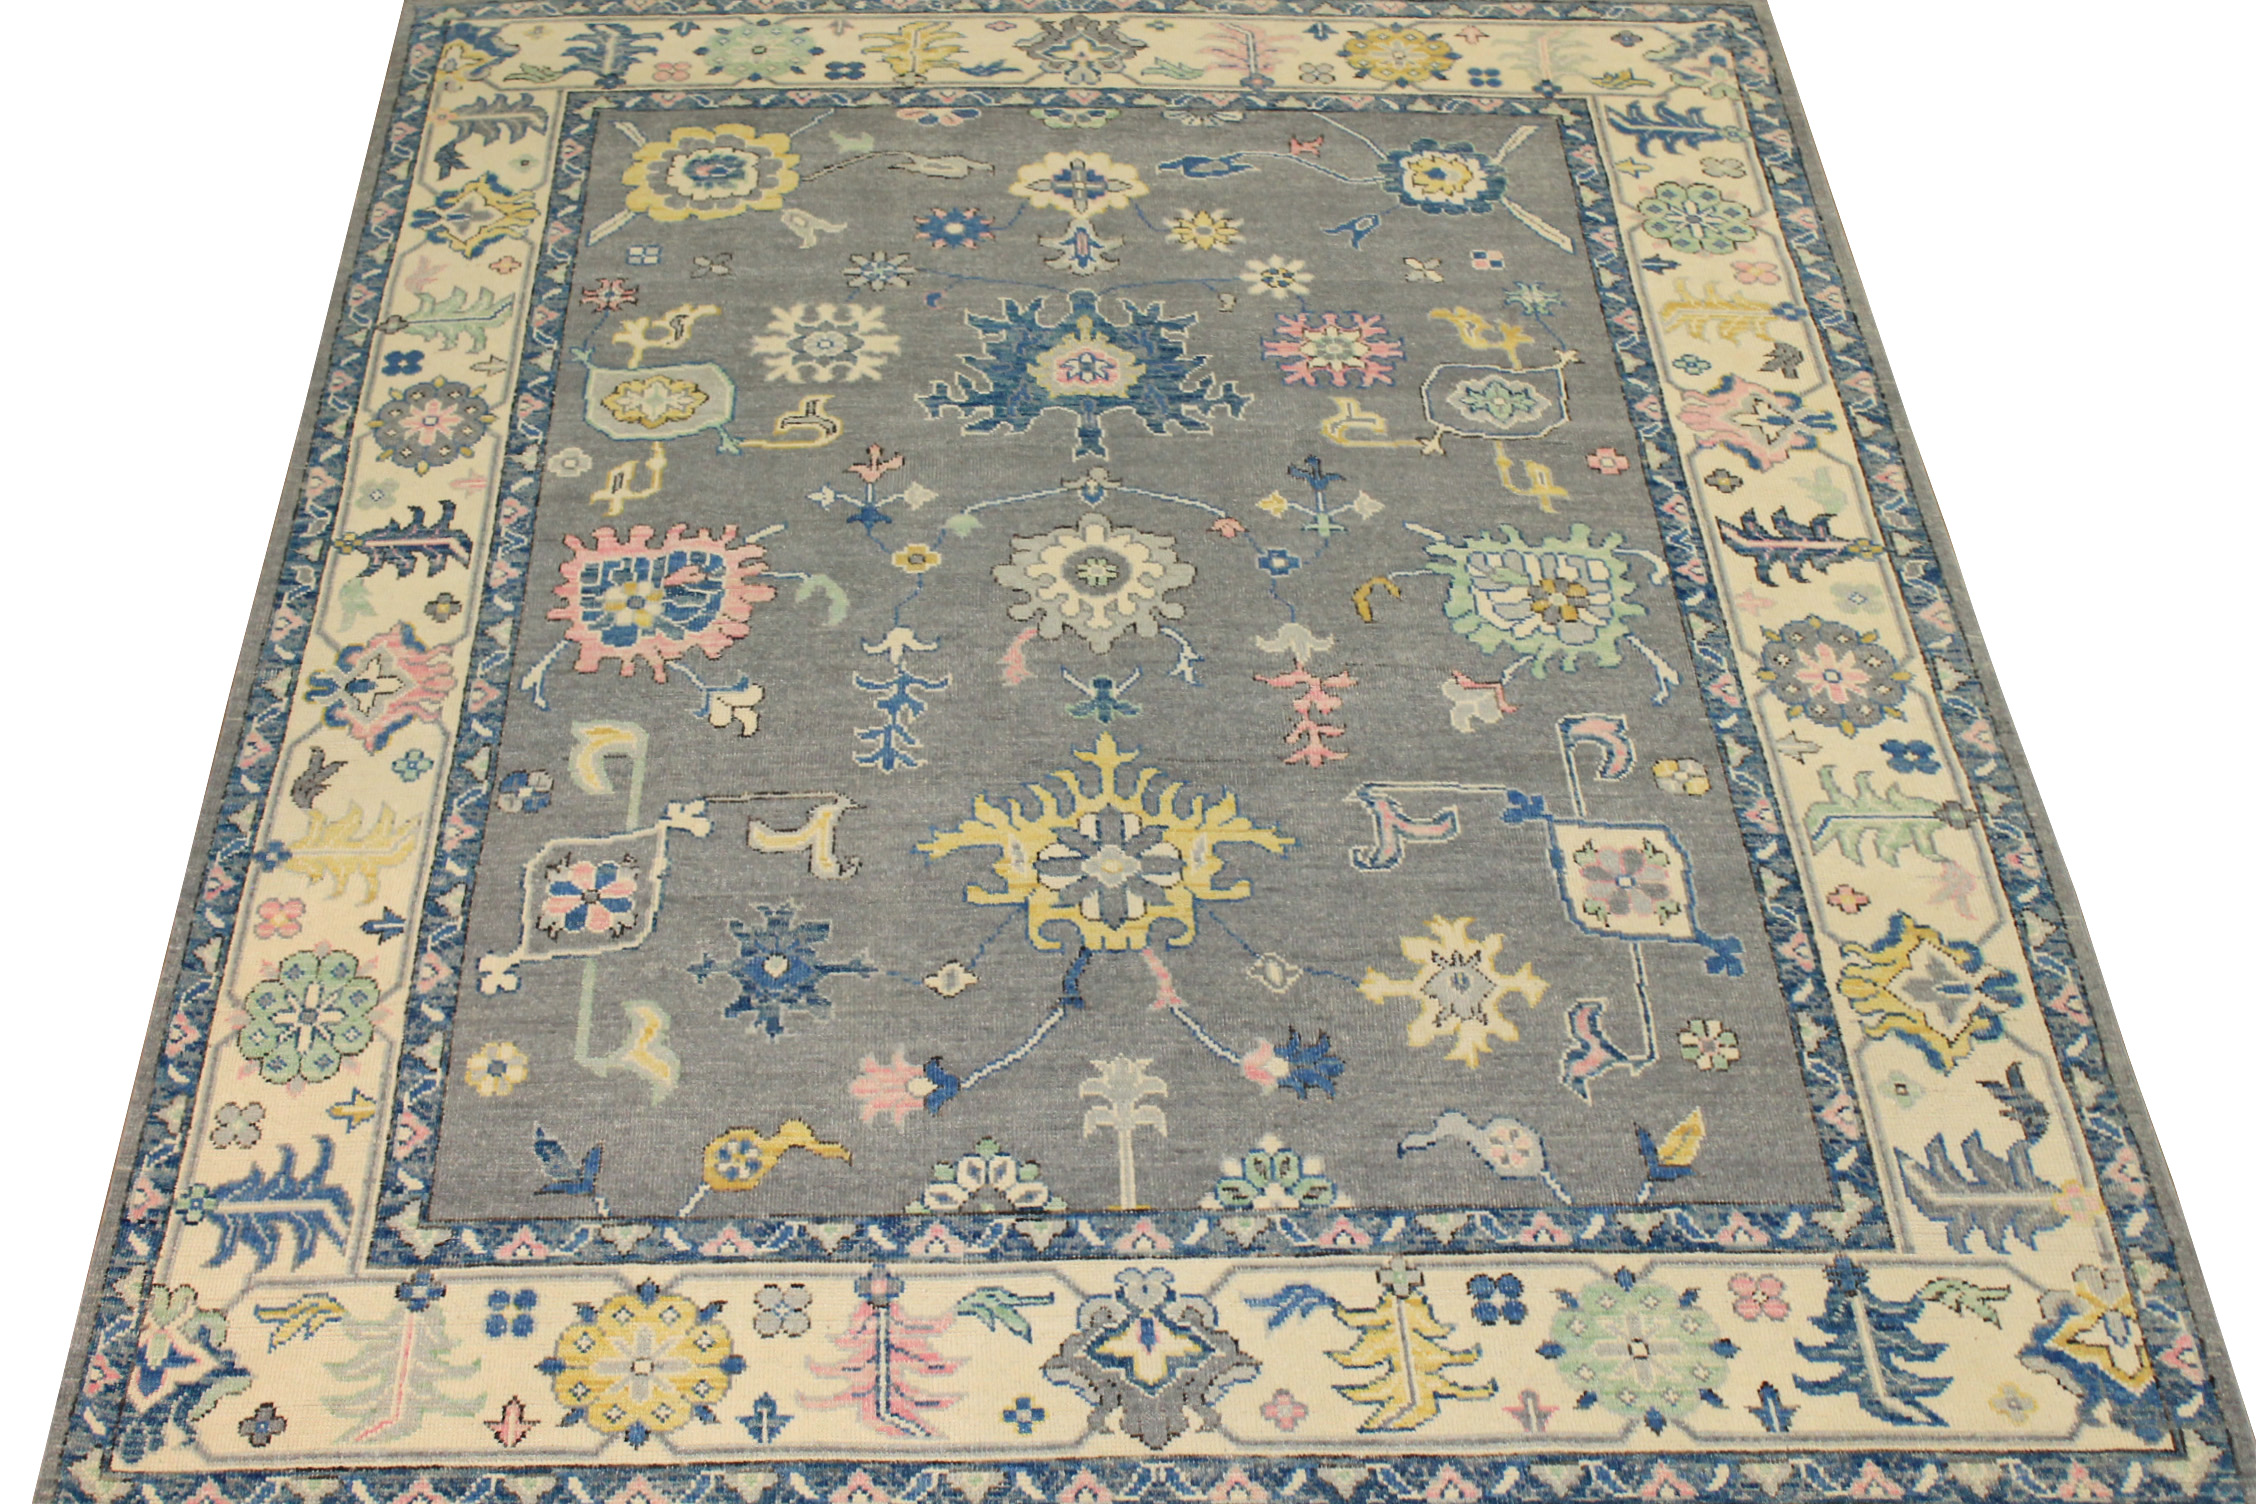 8x10 Oushak Hand Knotted Wool Area Rug - MR024404